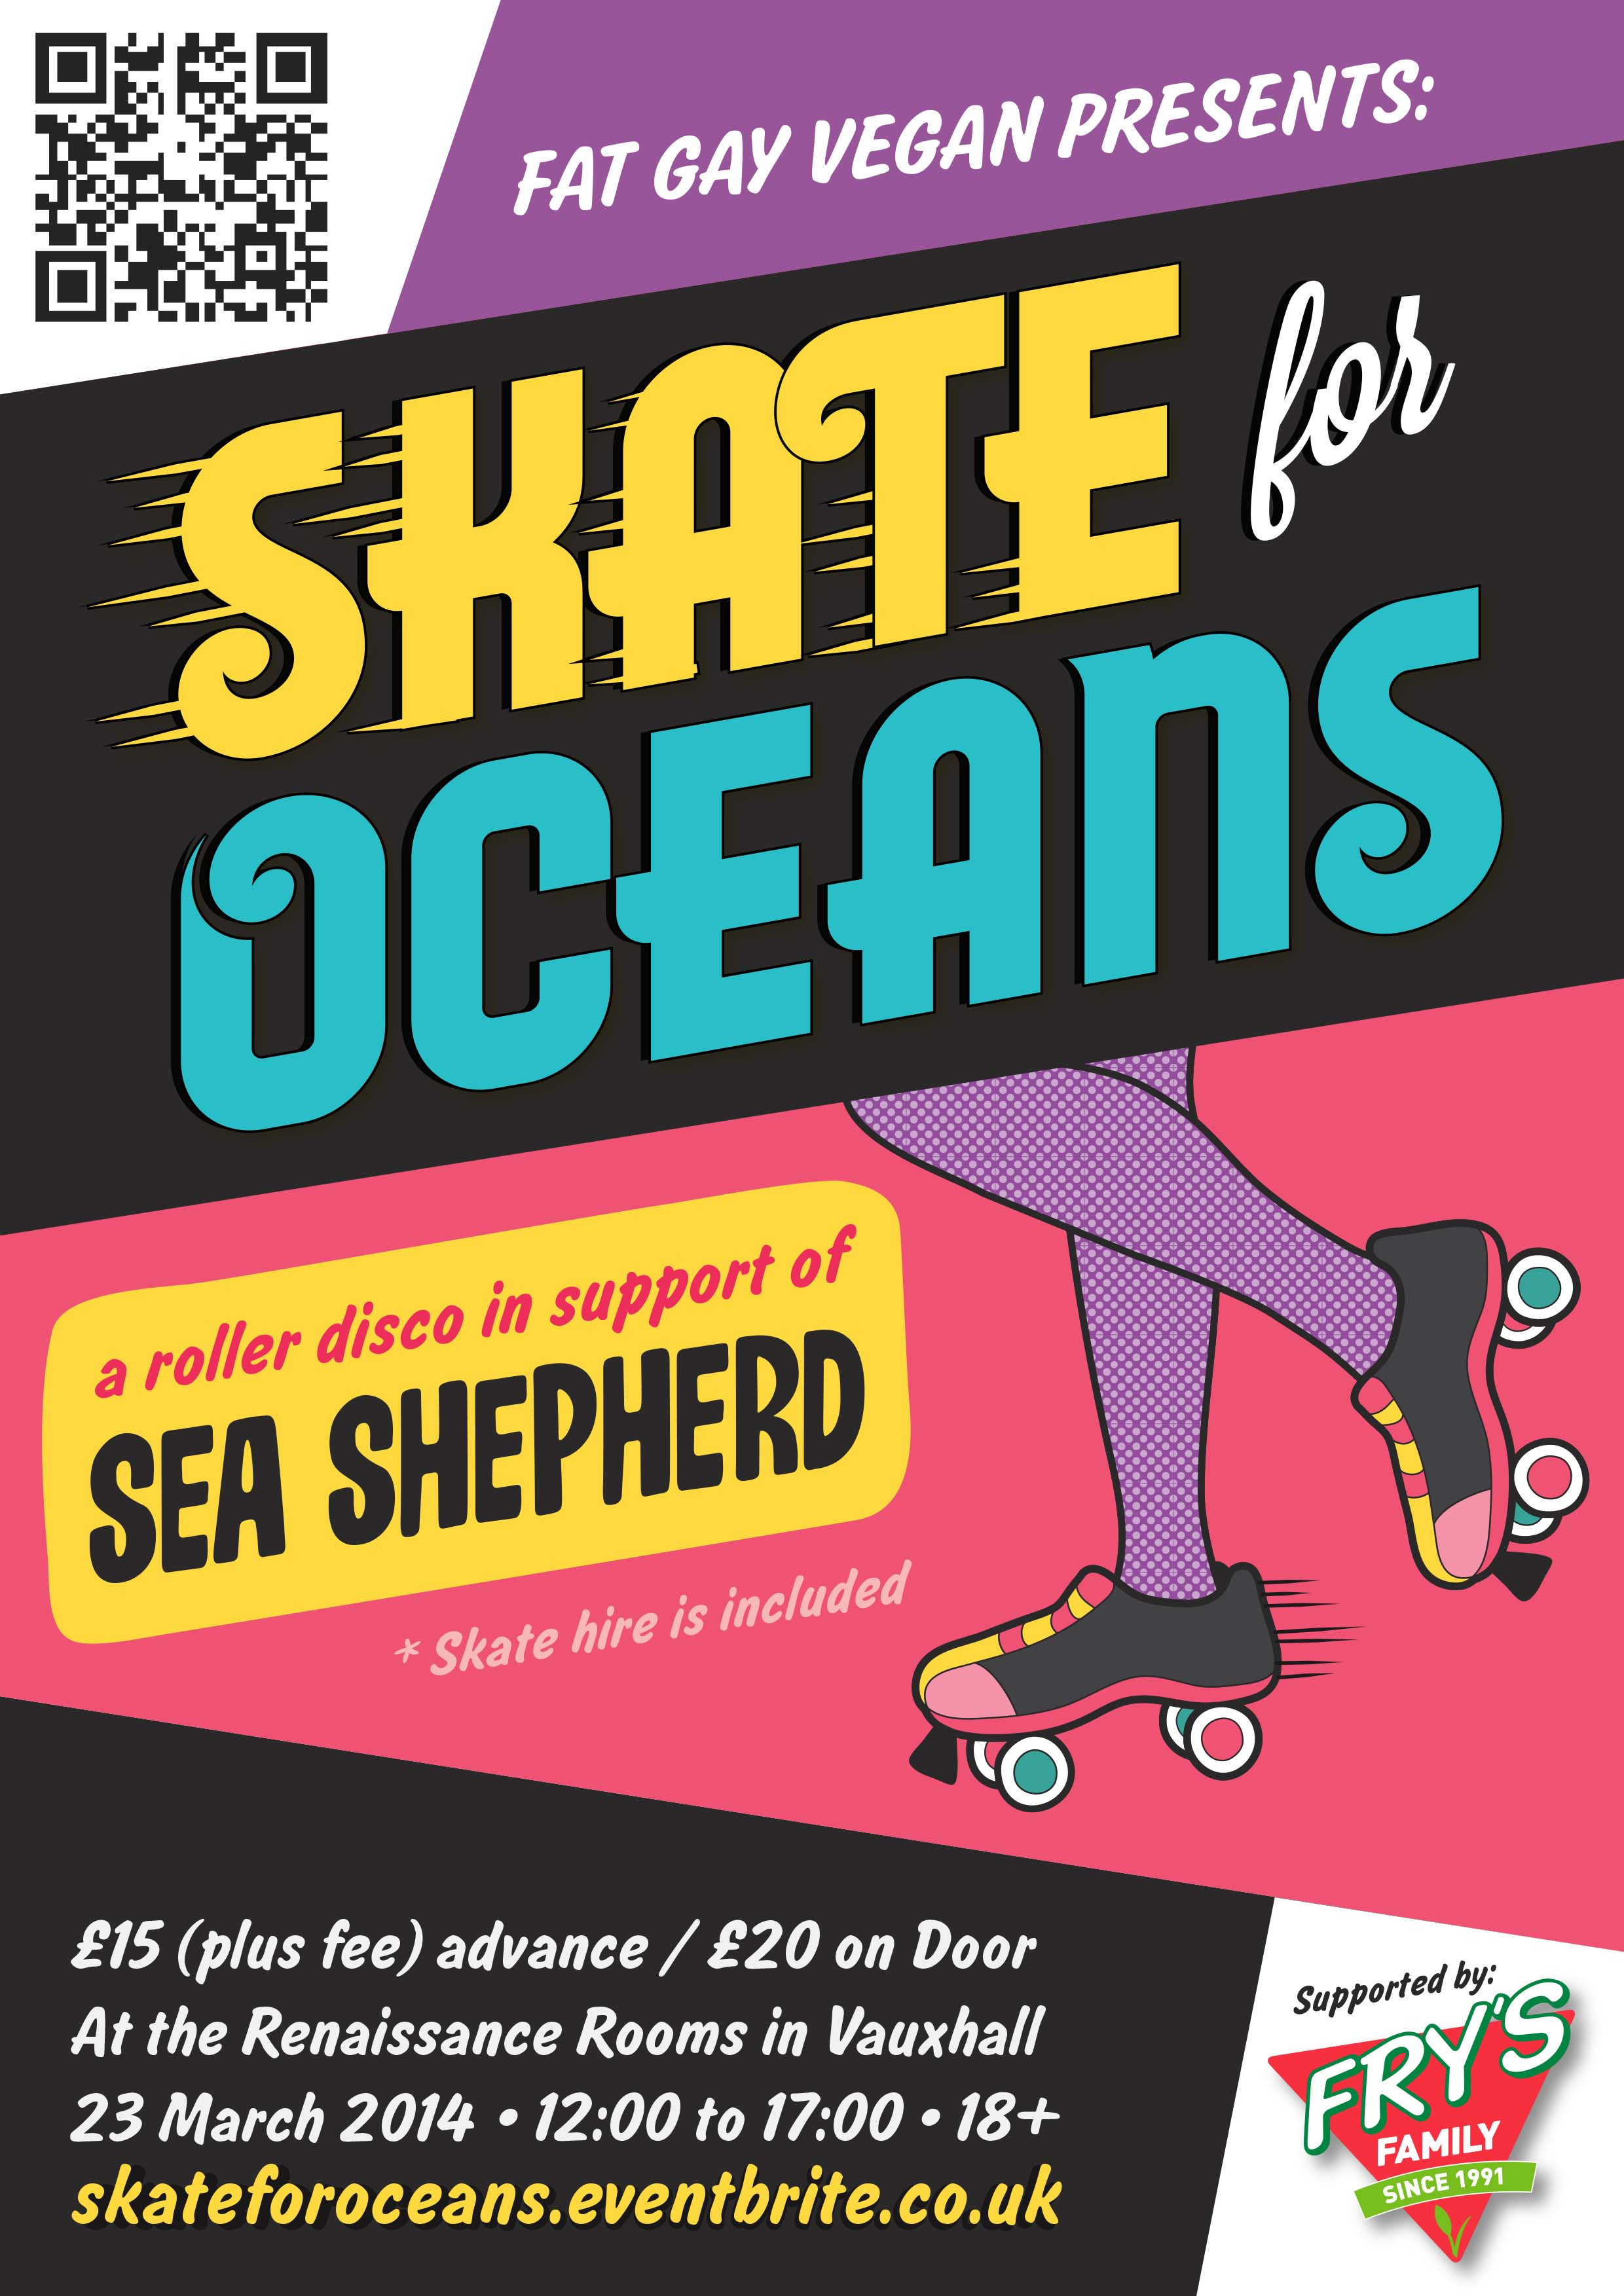 https://i1.wp.com/fatgayvegan.com/wp-content/uploads/2014/01/skate-for-oceans-2014-a4-poster-02.jpg?fit=2480%2C3507